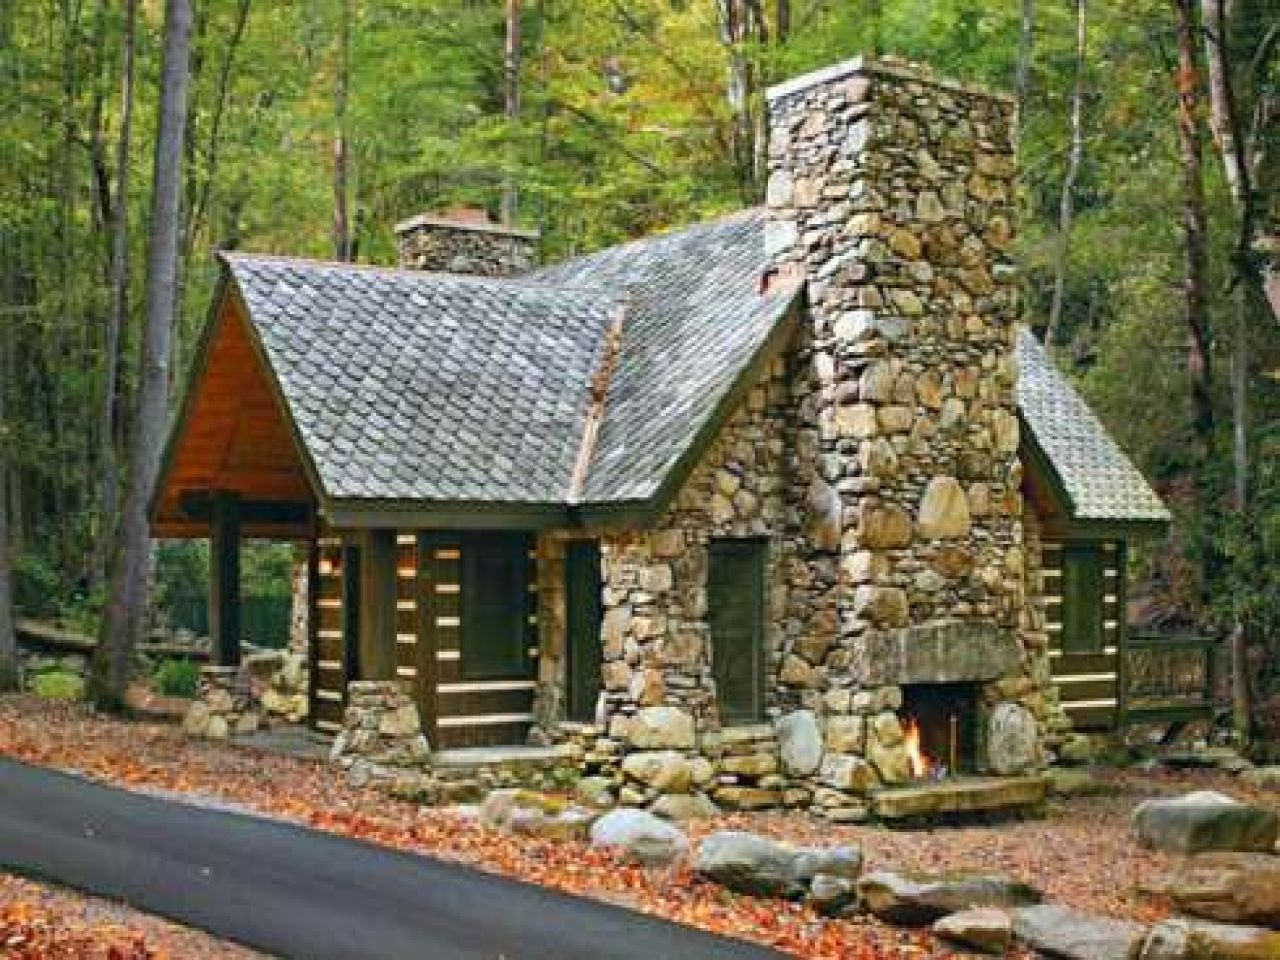 stone and log home plans.  Small Stone Cabin Plans House Mountain Log Floor Kits Simple Best Free Home Design Idea Inspiration Afbeeldingsresultaat voor cottage house home deco Pinterest